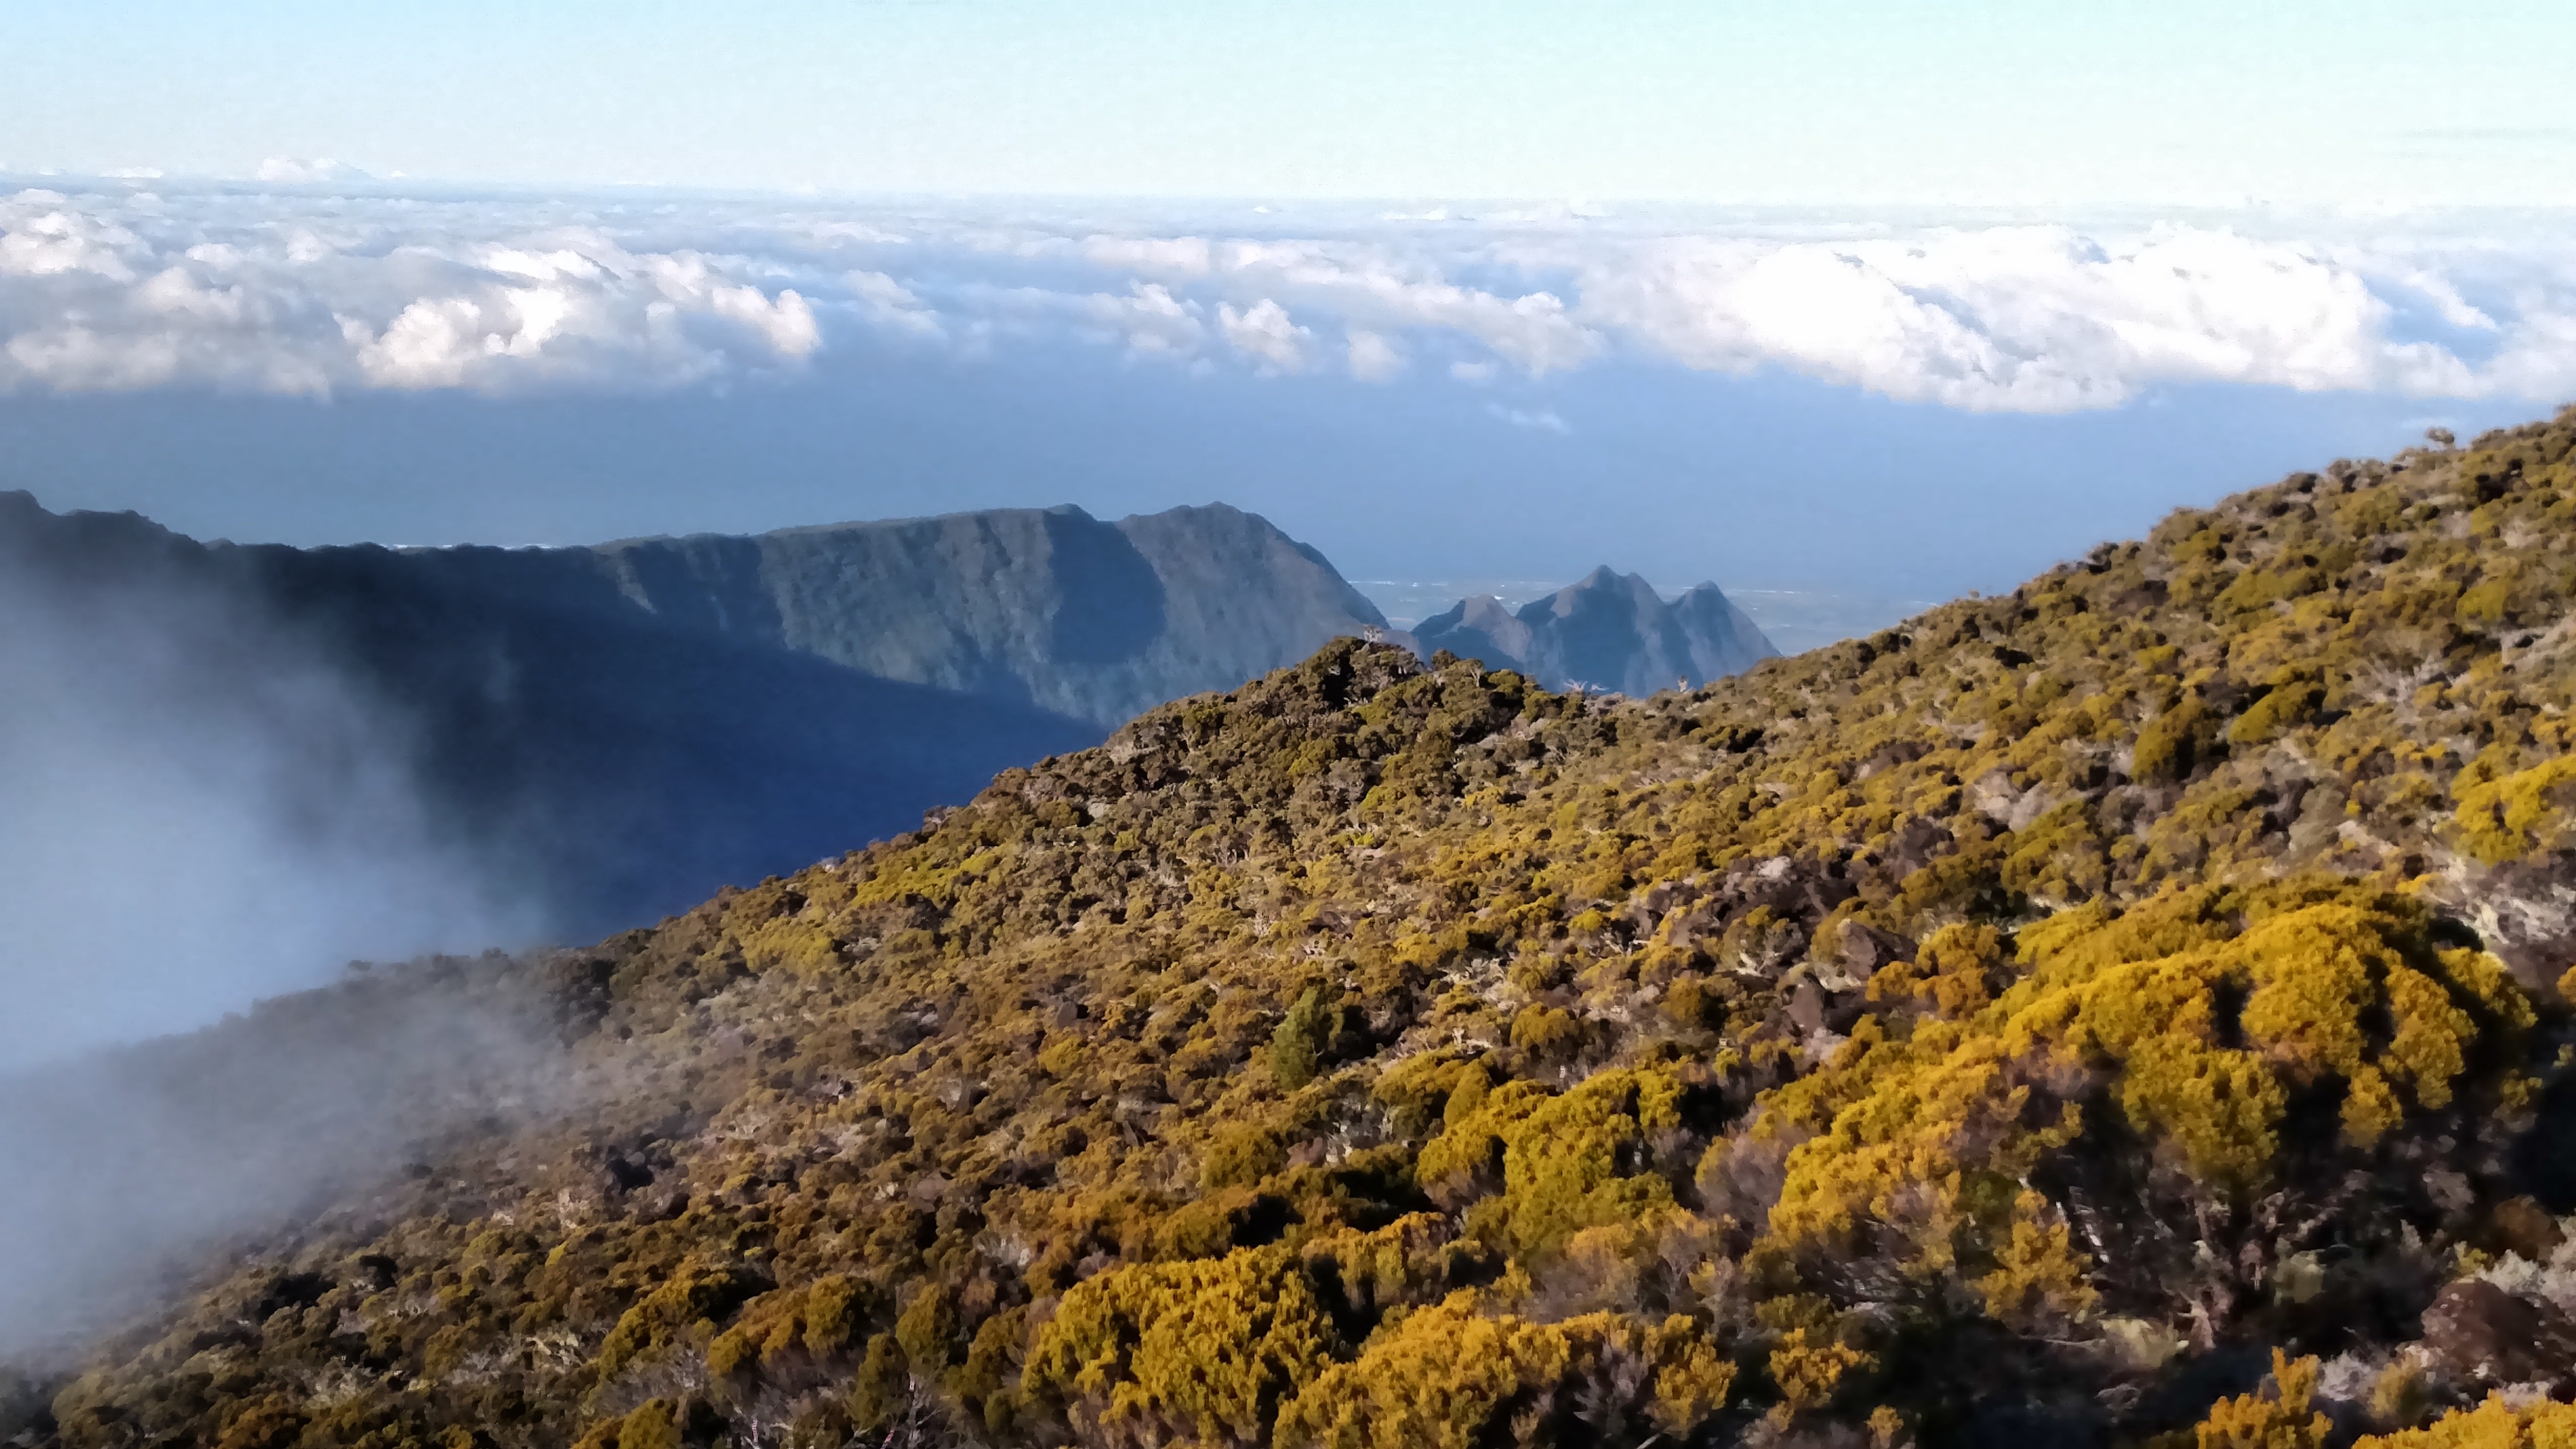 Researchers used isotopic data to reveal the evolutionary timeline of the Reunion Islands was impacted by the formation of early Earth.